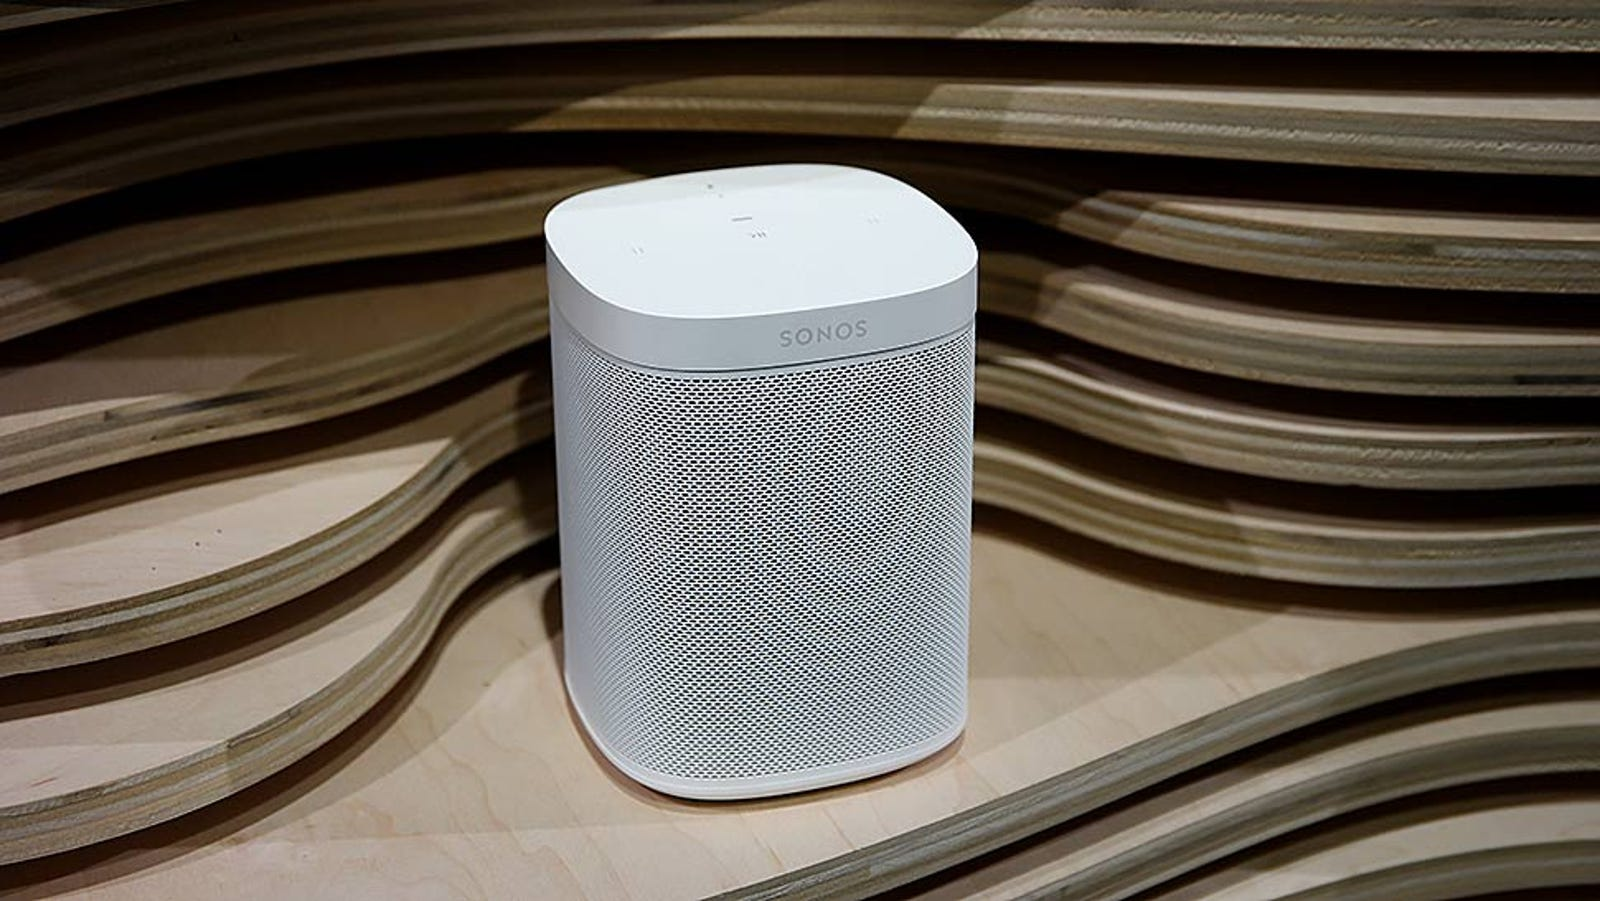 The Sonos One. Photo: Sam Rutherford